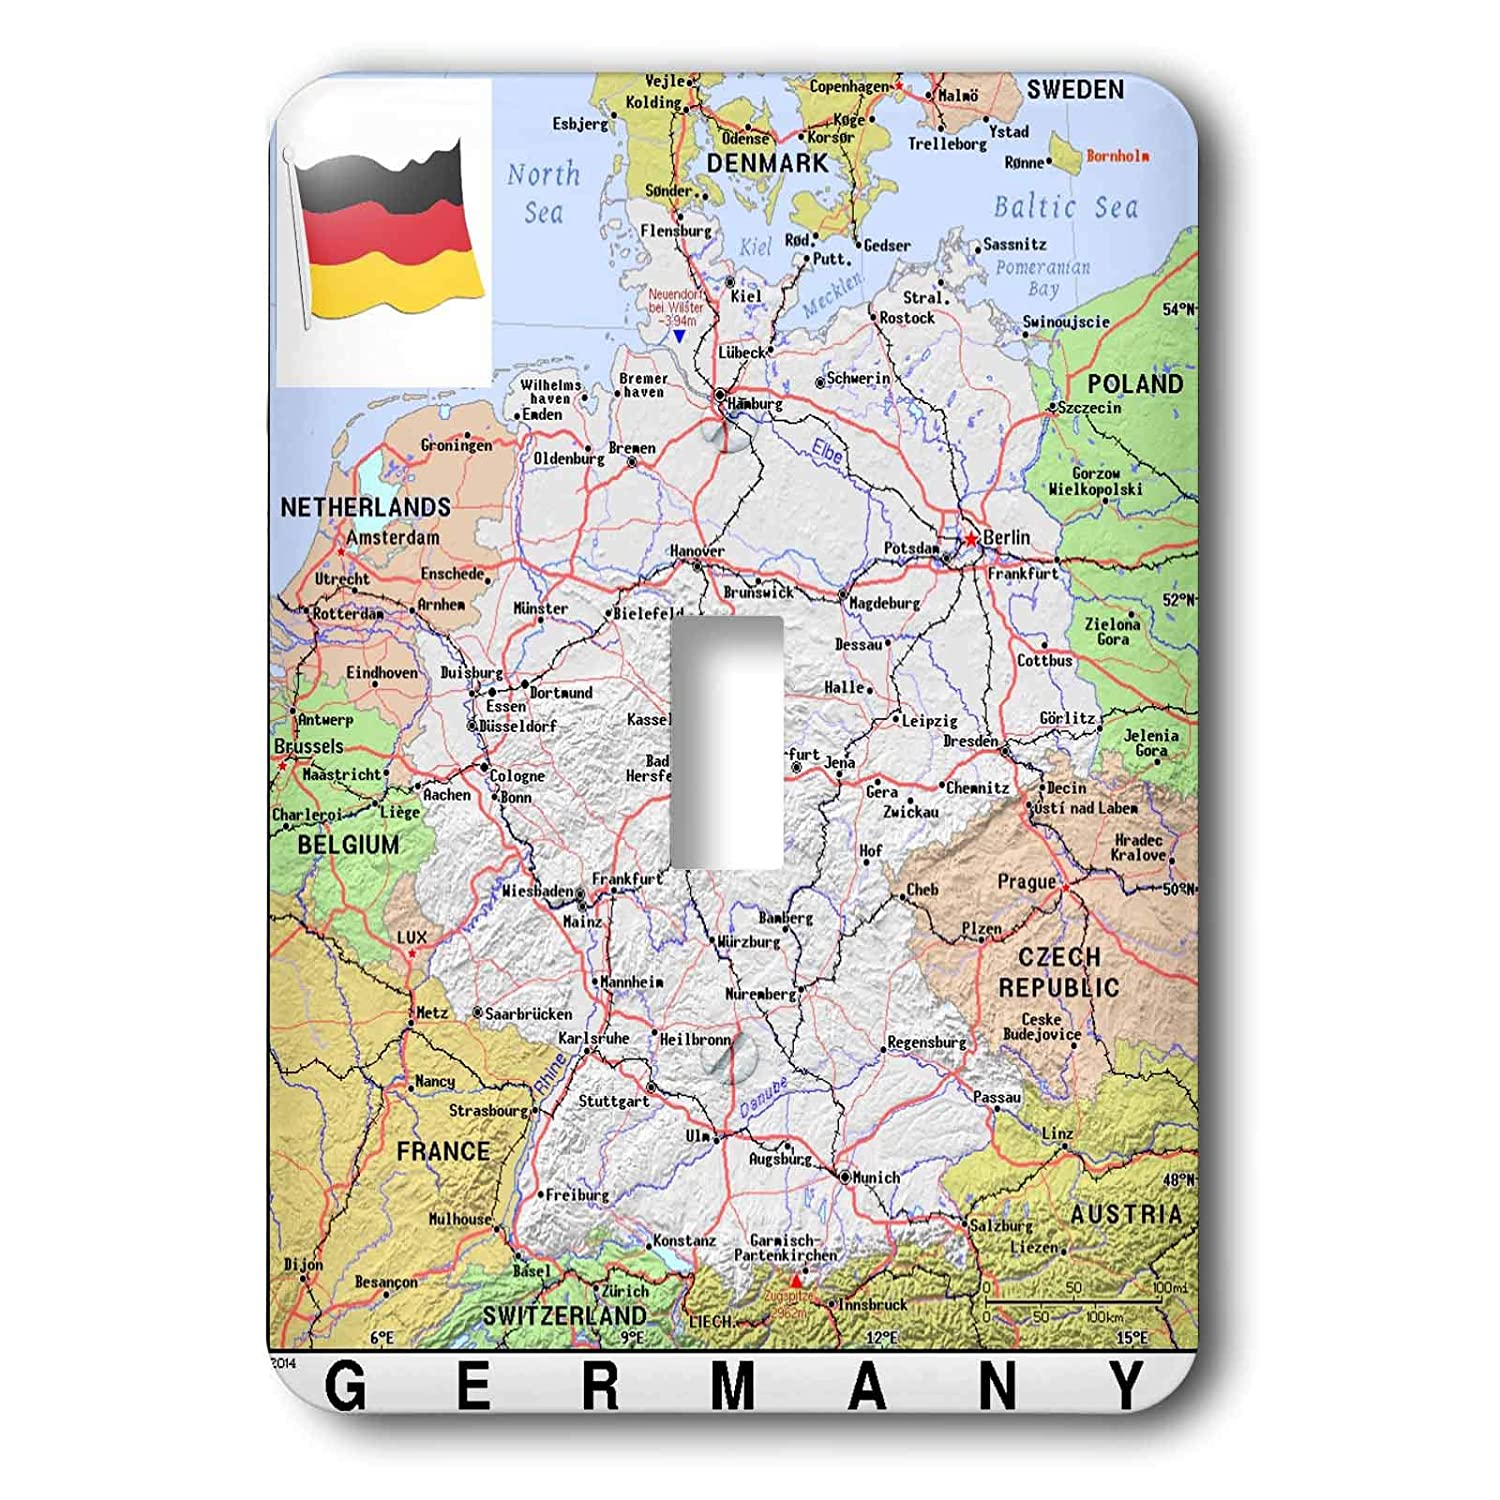 Map Of Germany Showing Cities.3drose Lens Art By Florene Topo Maps With Flags Image Of Map Of